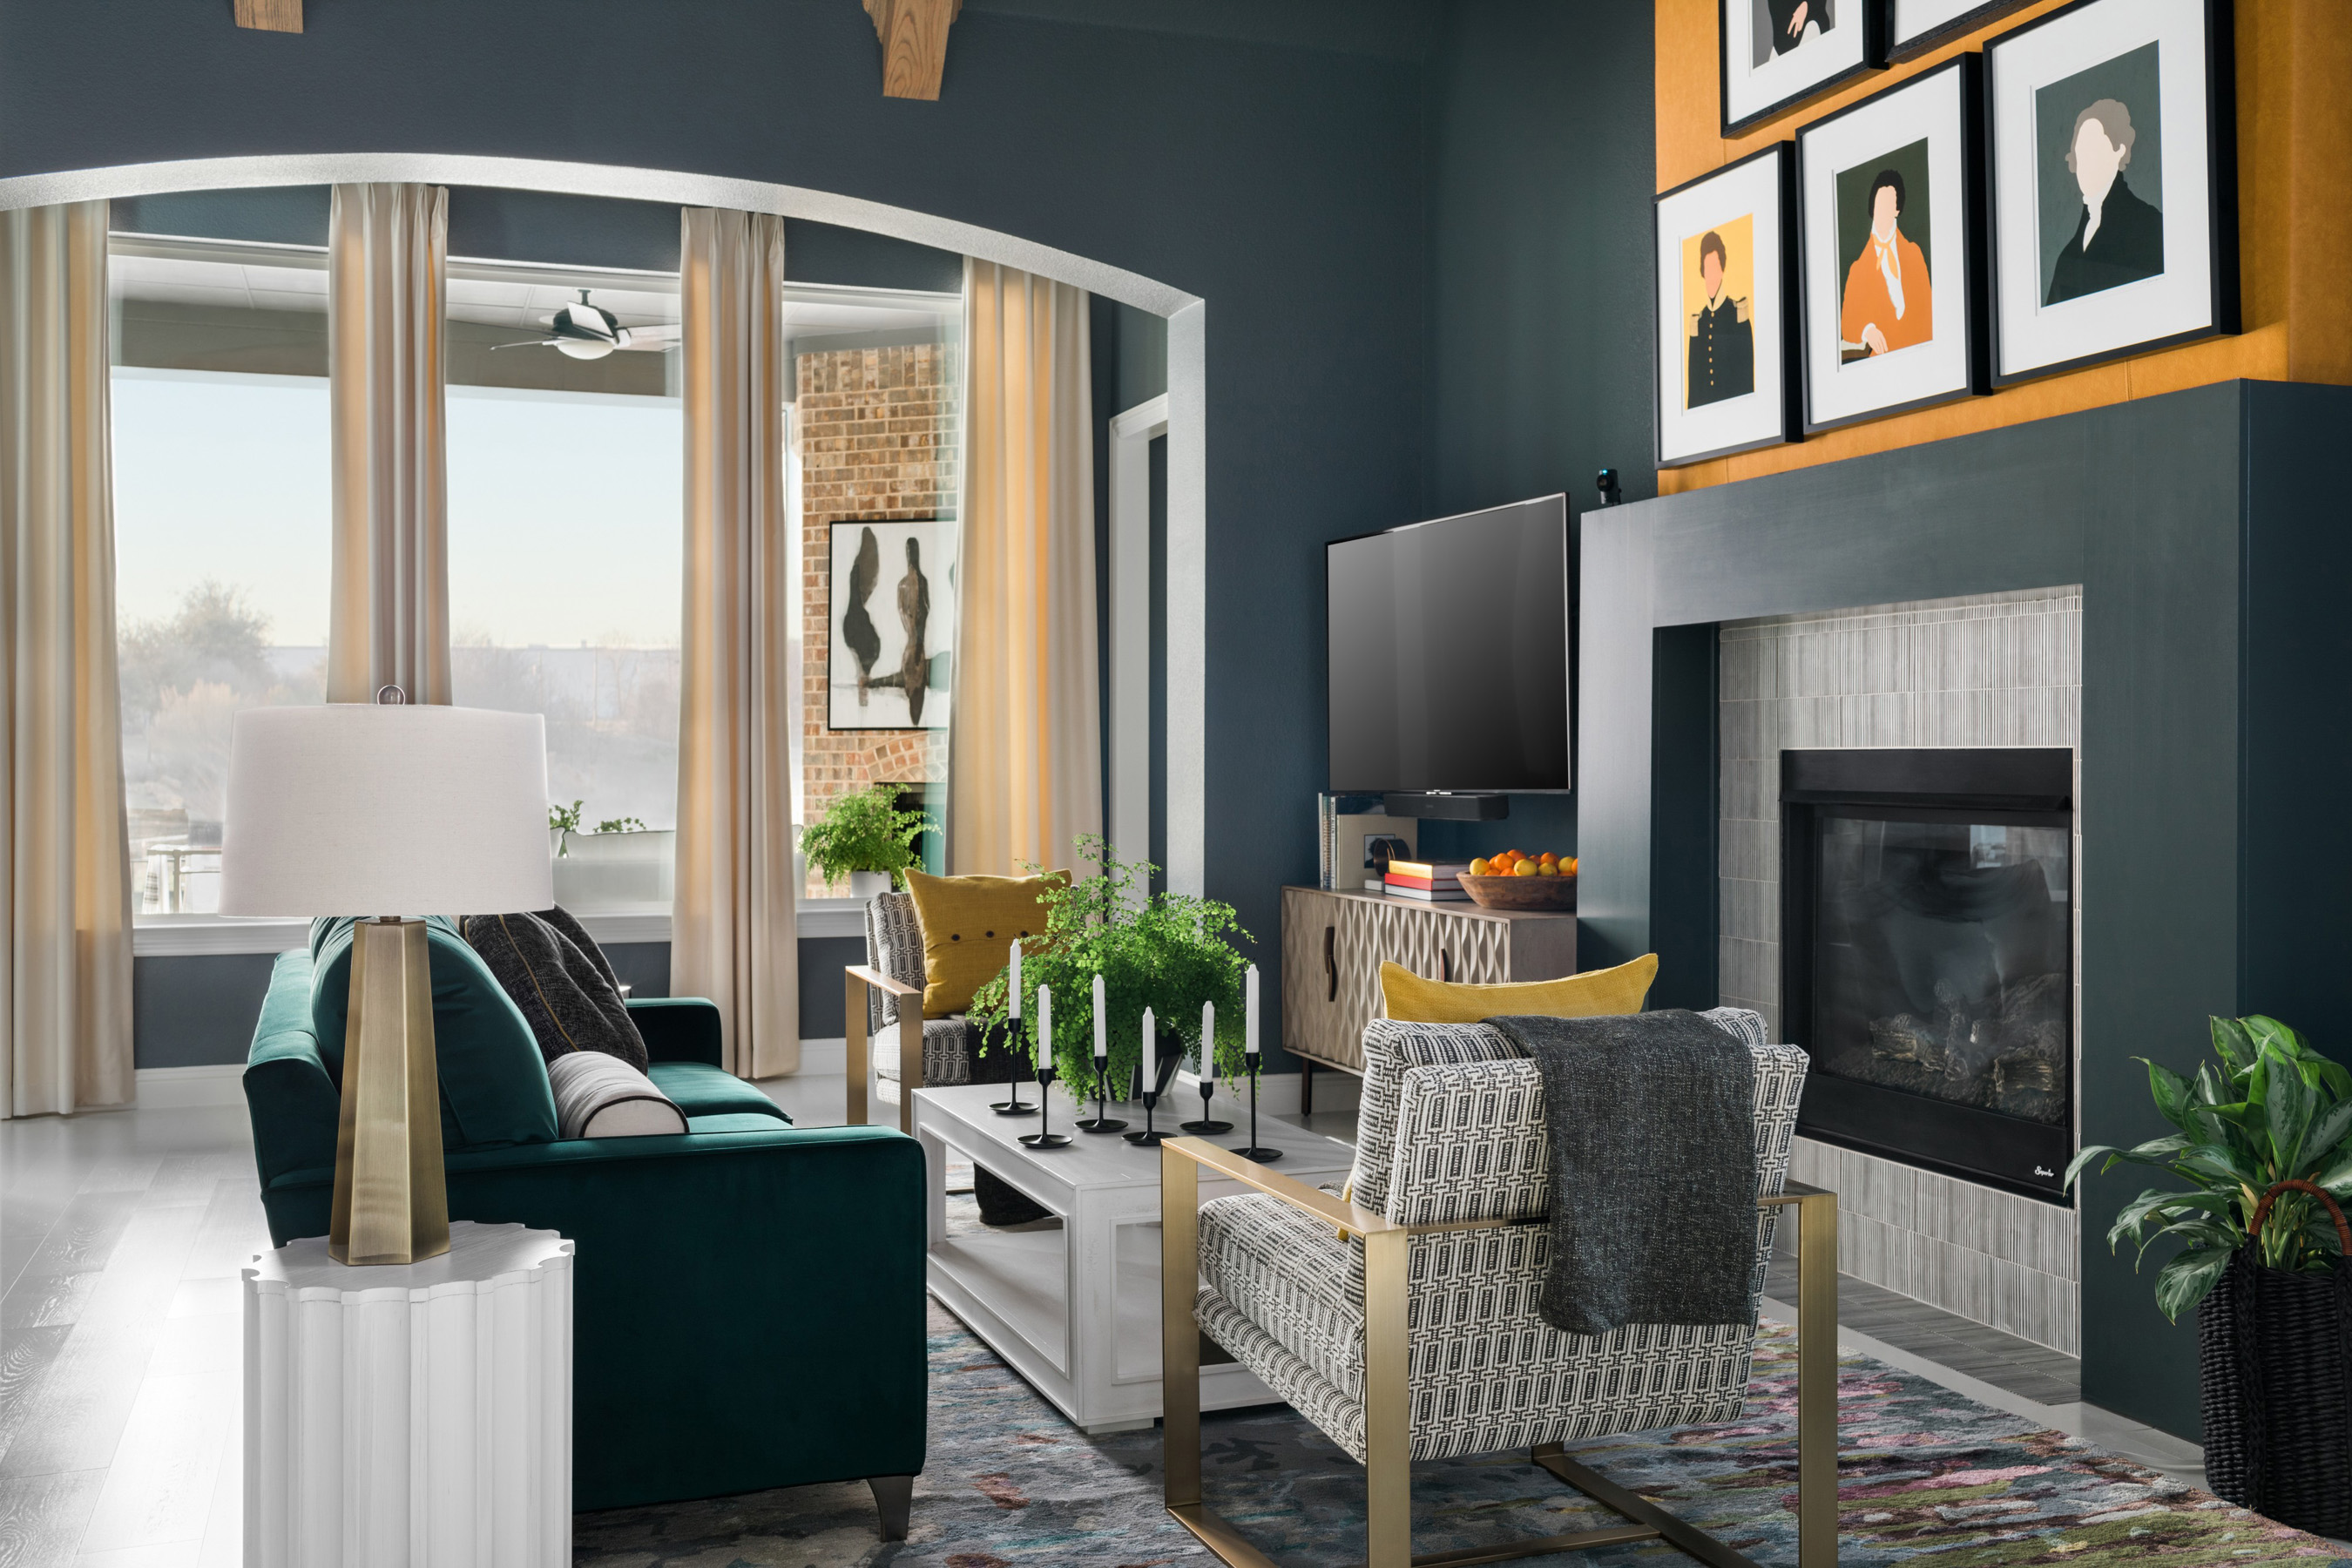 hgtv smart home 2019 sweepstakes take a virtual tour of hgtv smart home 2019 located in the 4020